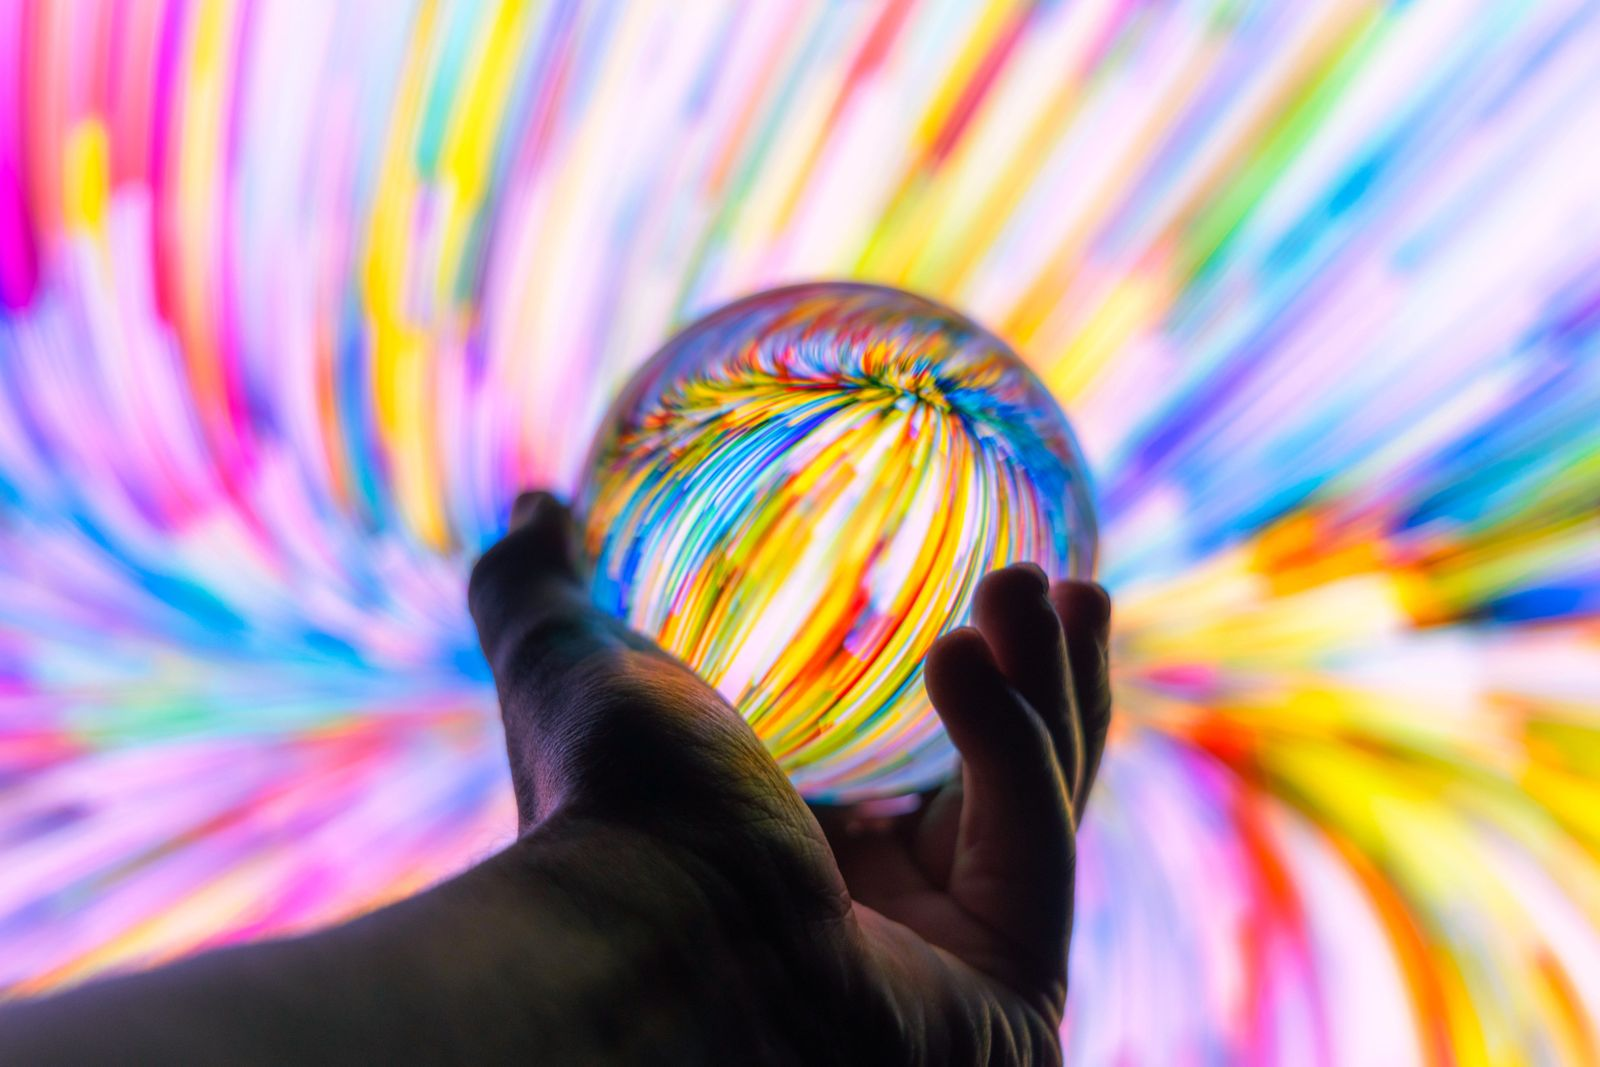 Holding a crystal ball through colorful background at night.